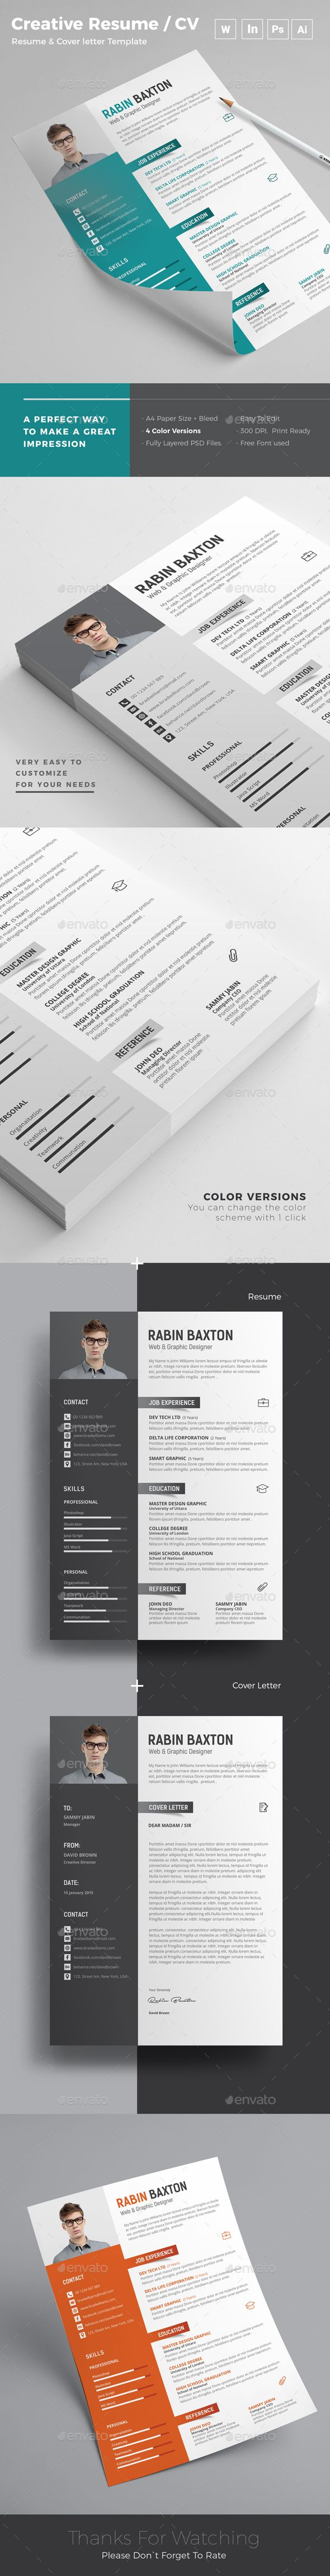 free creative resume templates that stand out%0A Resume  Resume Design TemplateCreative